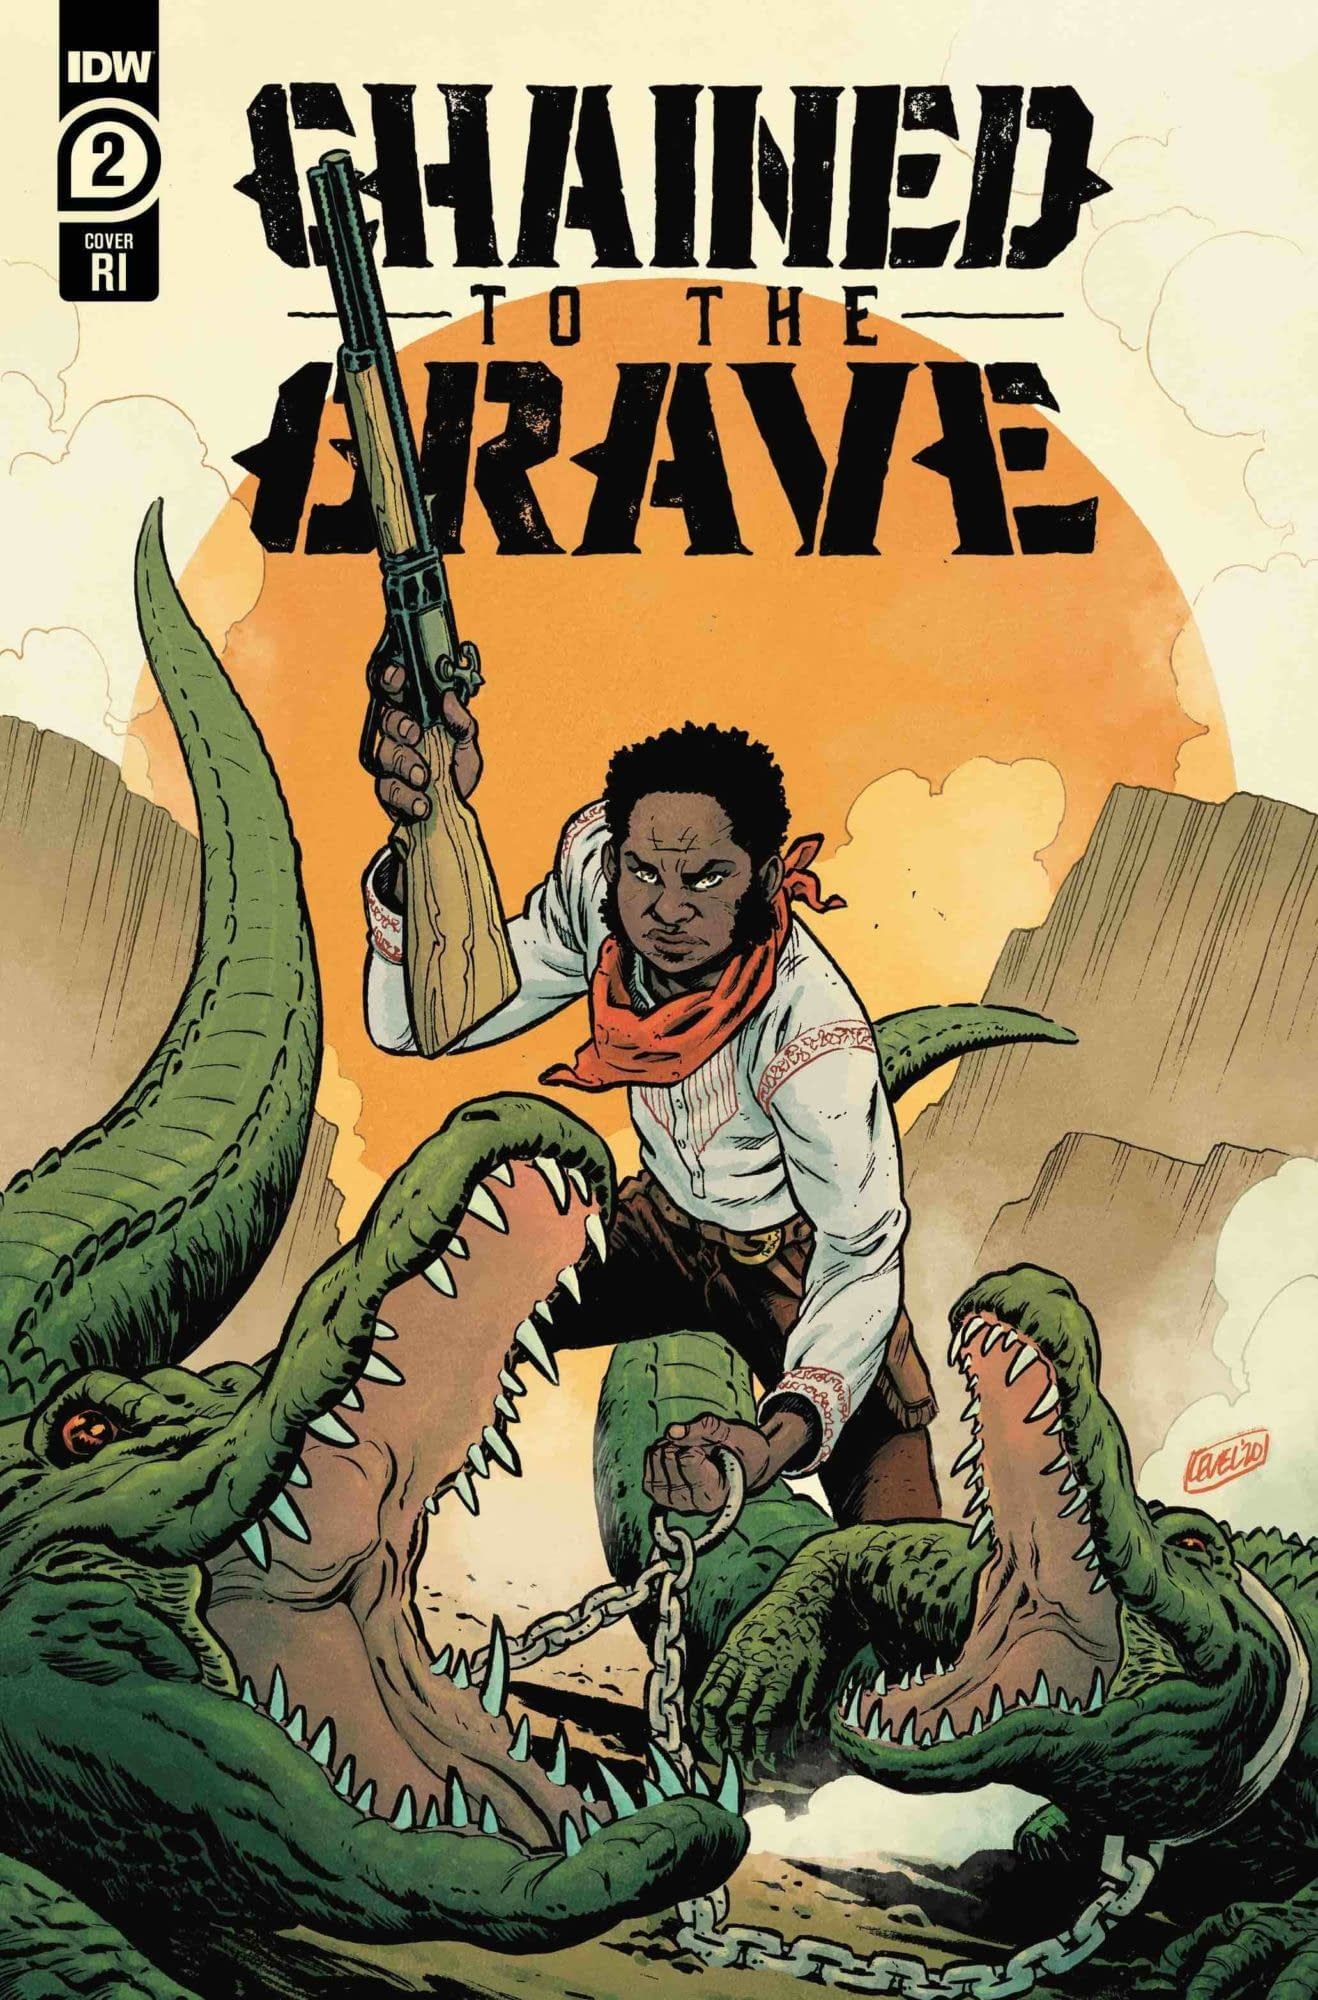 IDW Full Solicitations For March 2021 With Godzilla, Disney & GI Joe CHAINED TO THE GRAVE #2 (OF 5) 10 COPY INCV LEVEL (RES